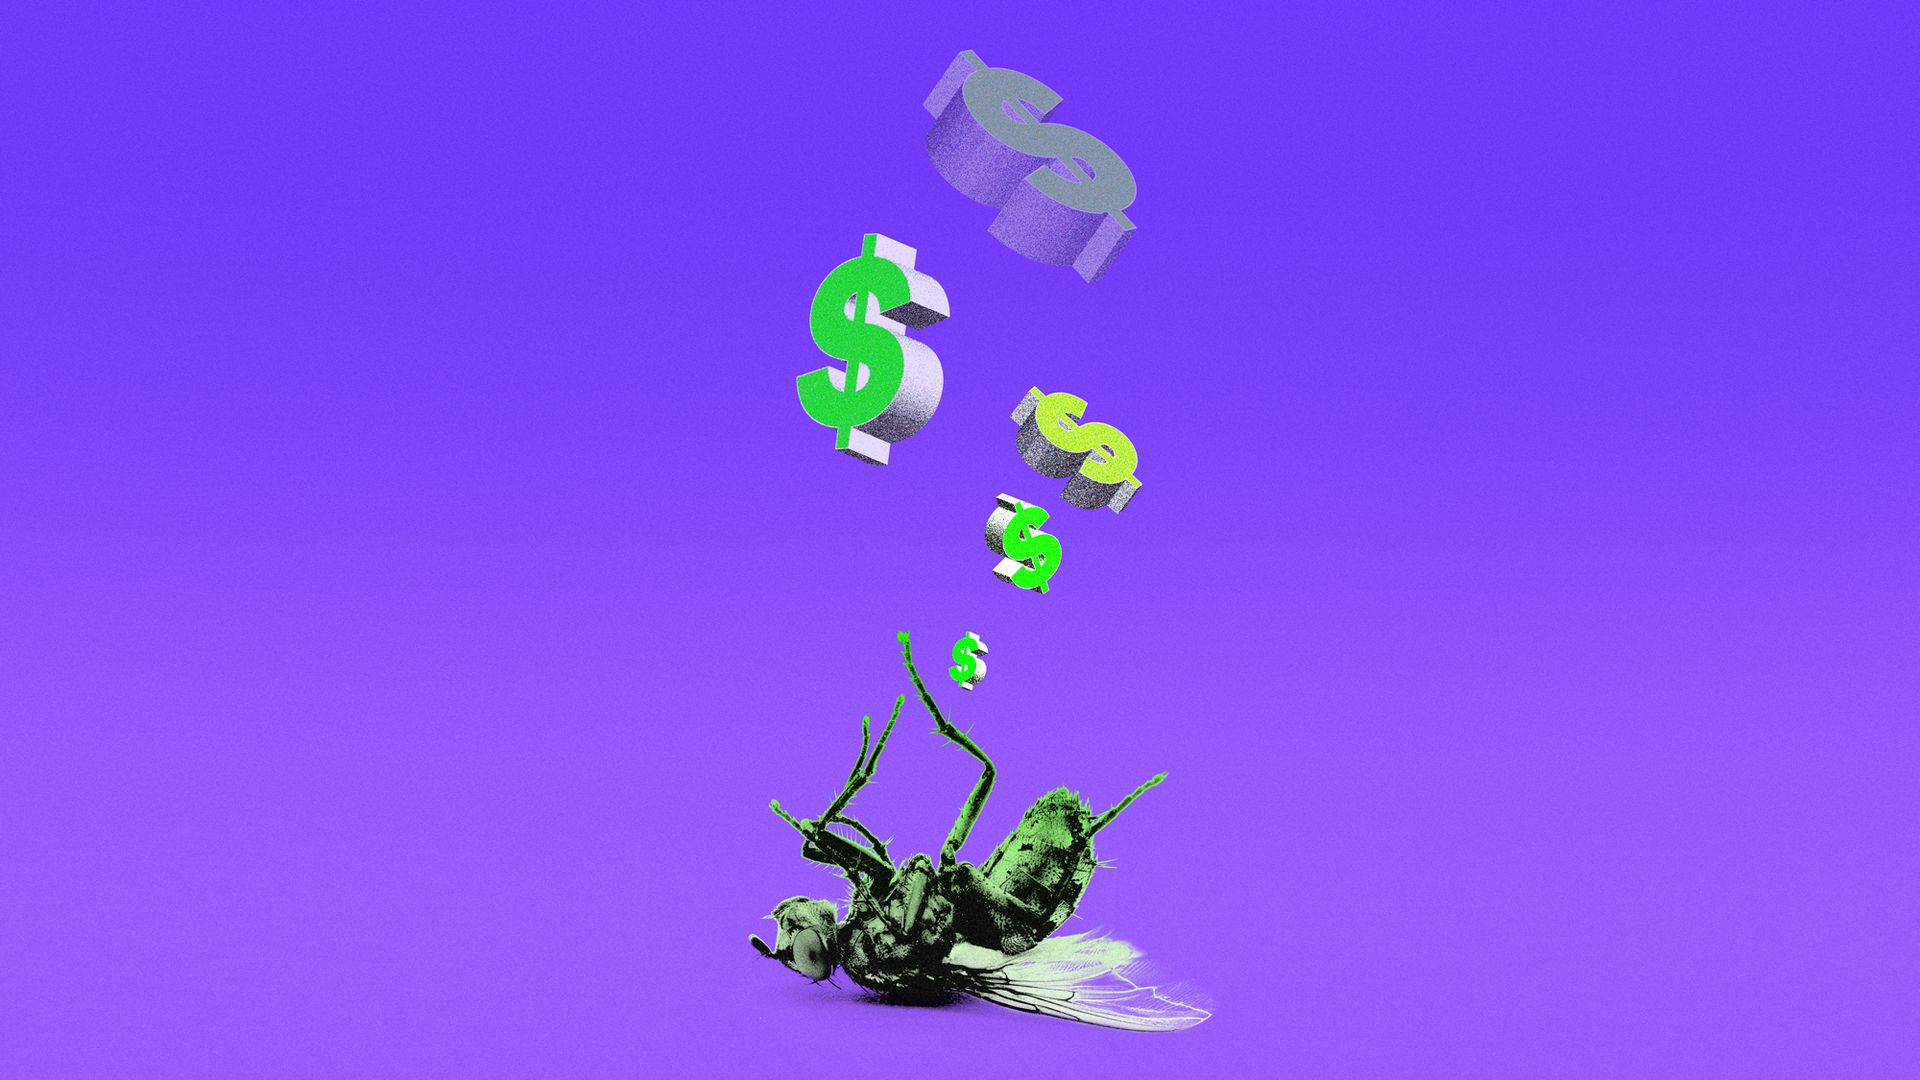 Dead insect with dollar signs floating above it